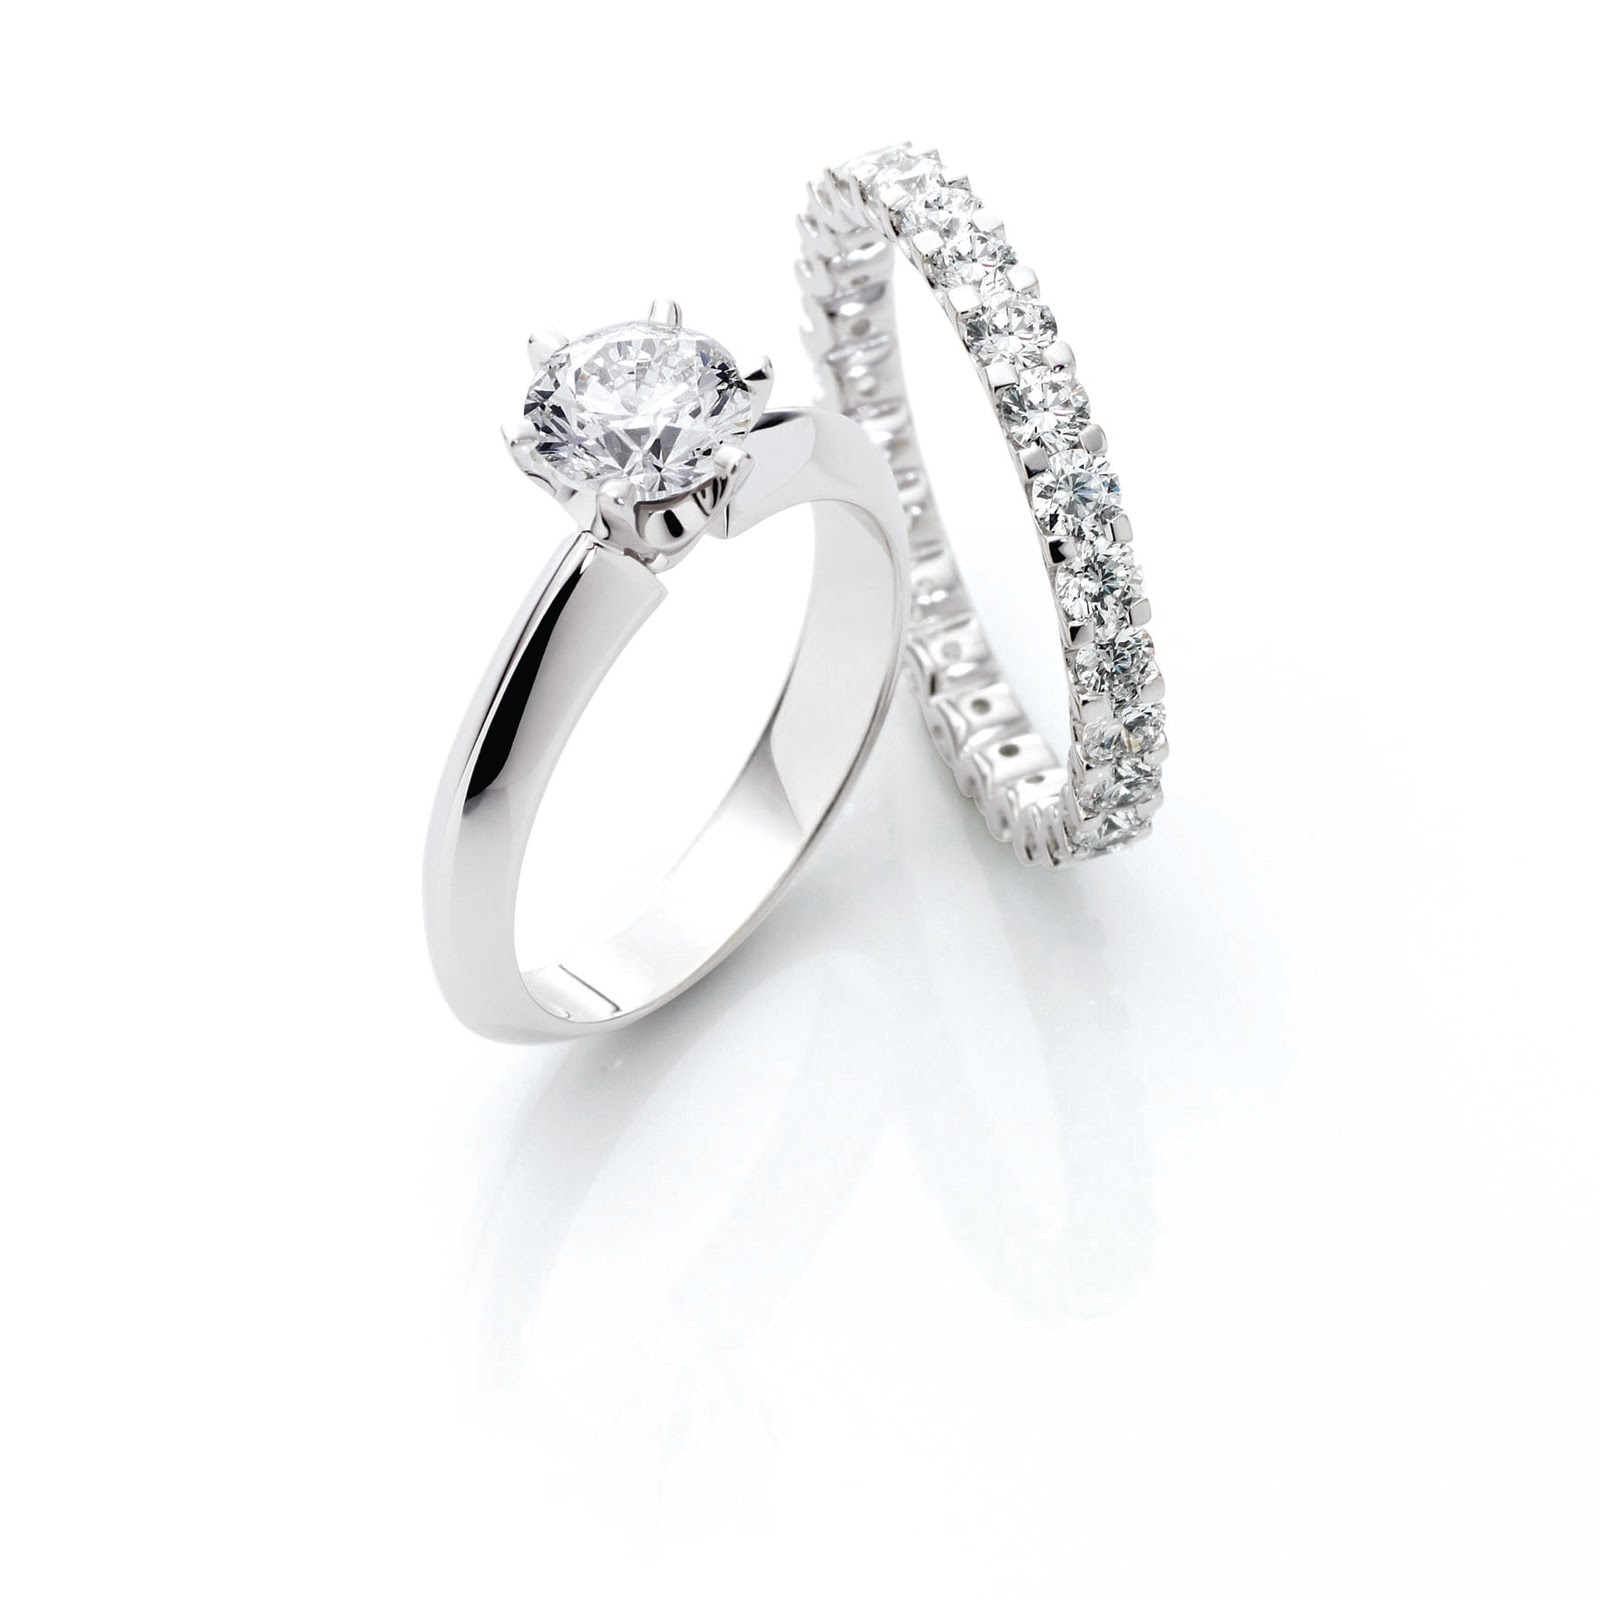 Do You Like To Share This Design Your Own Wedding Ring ?